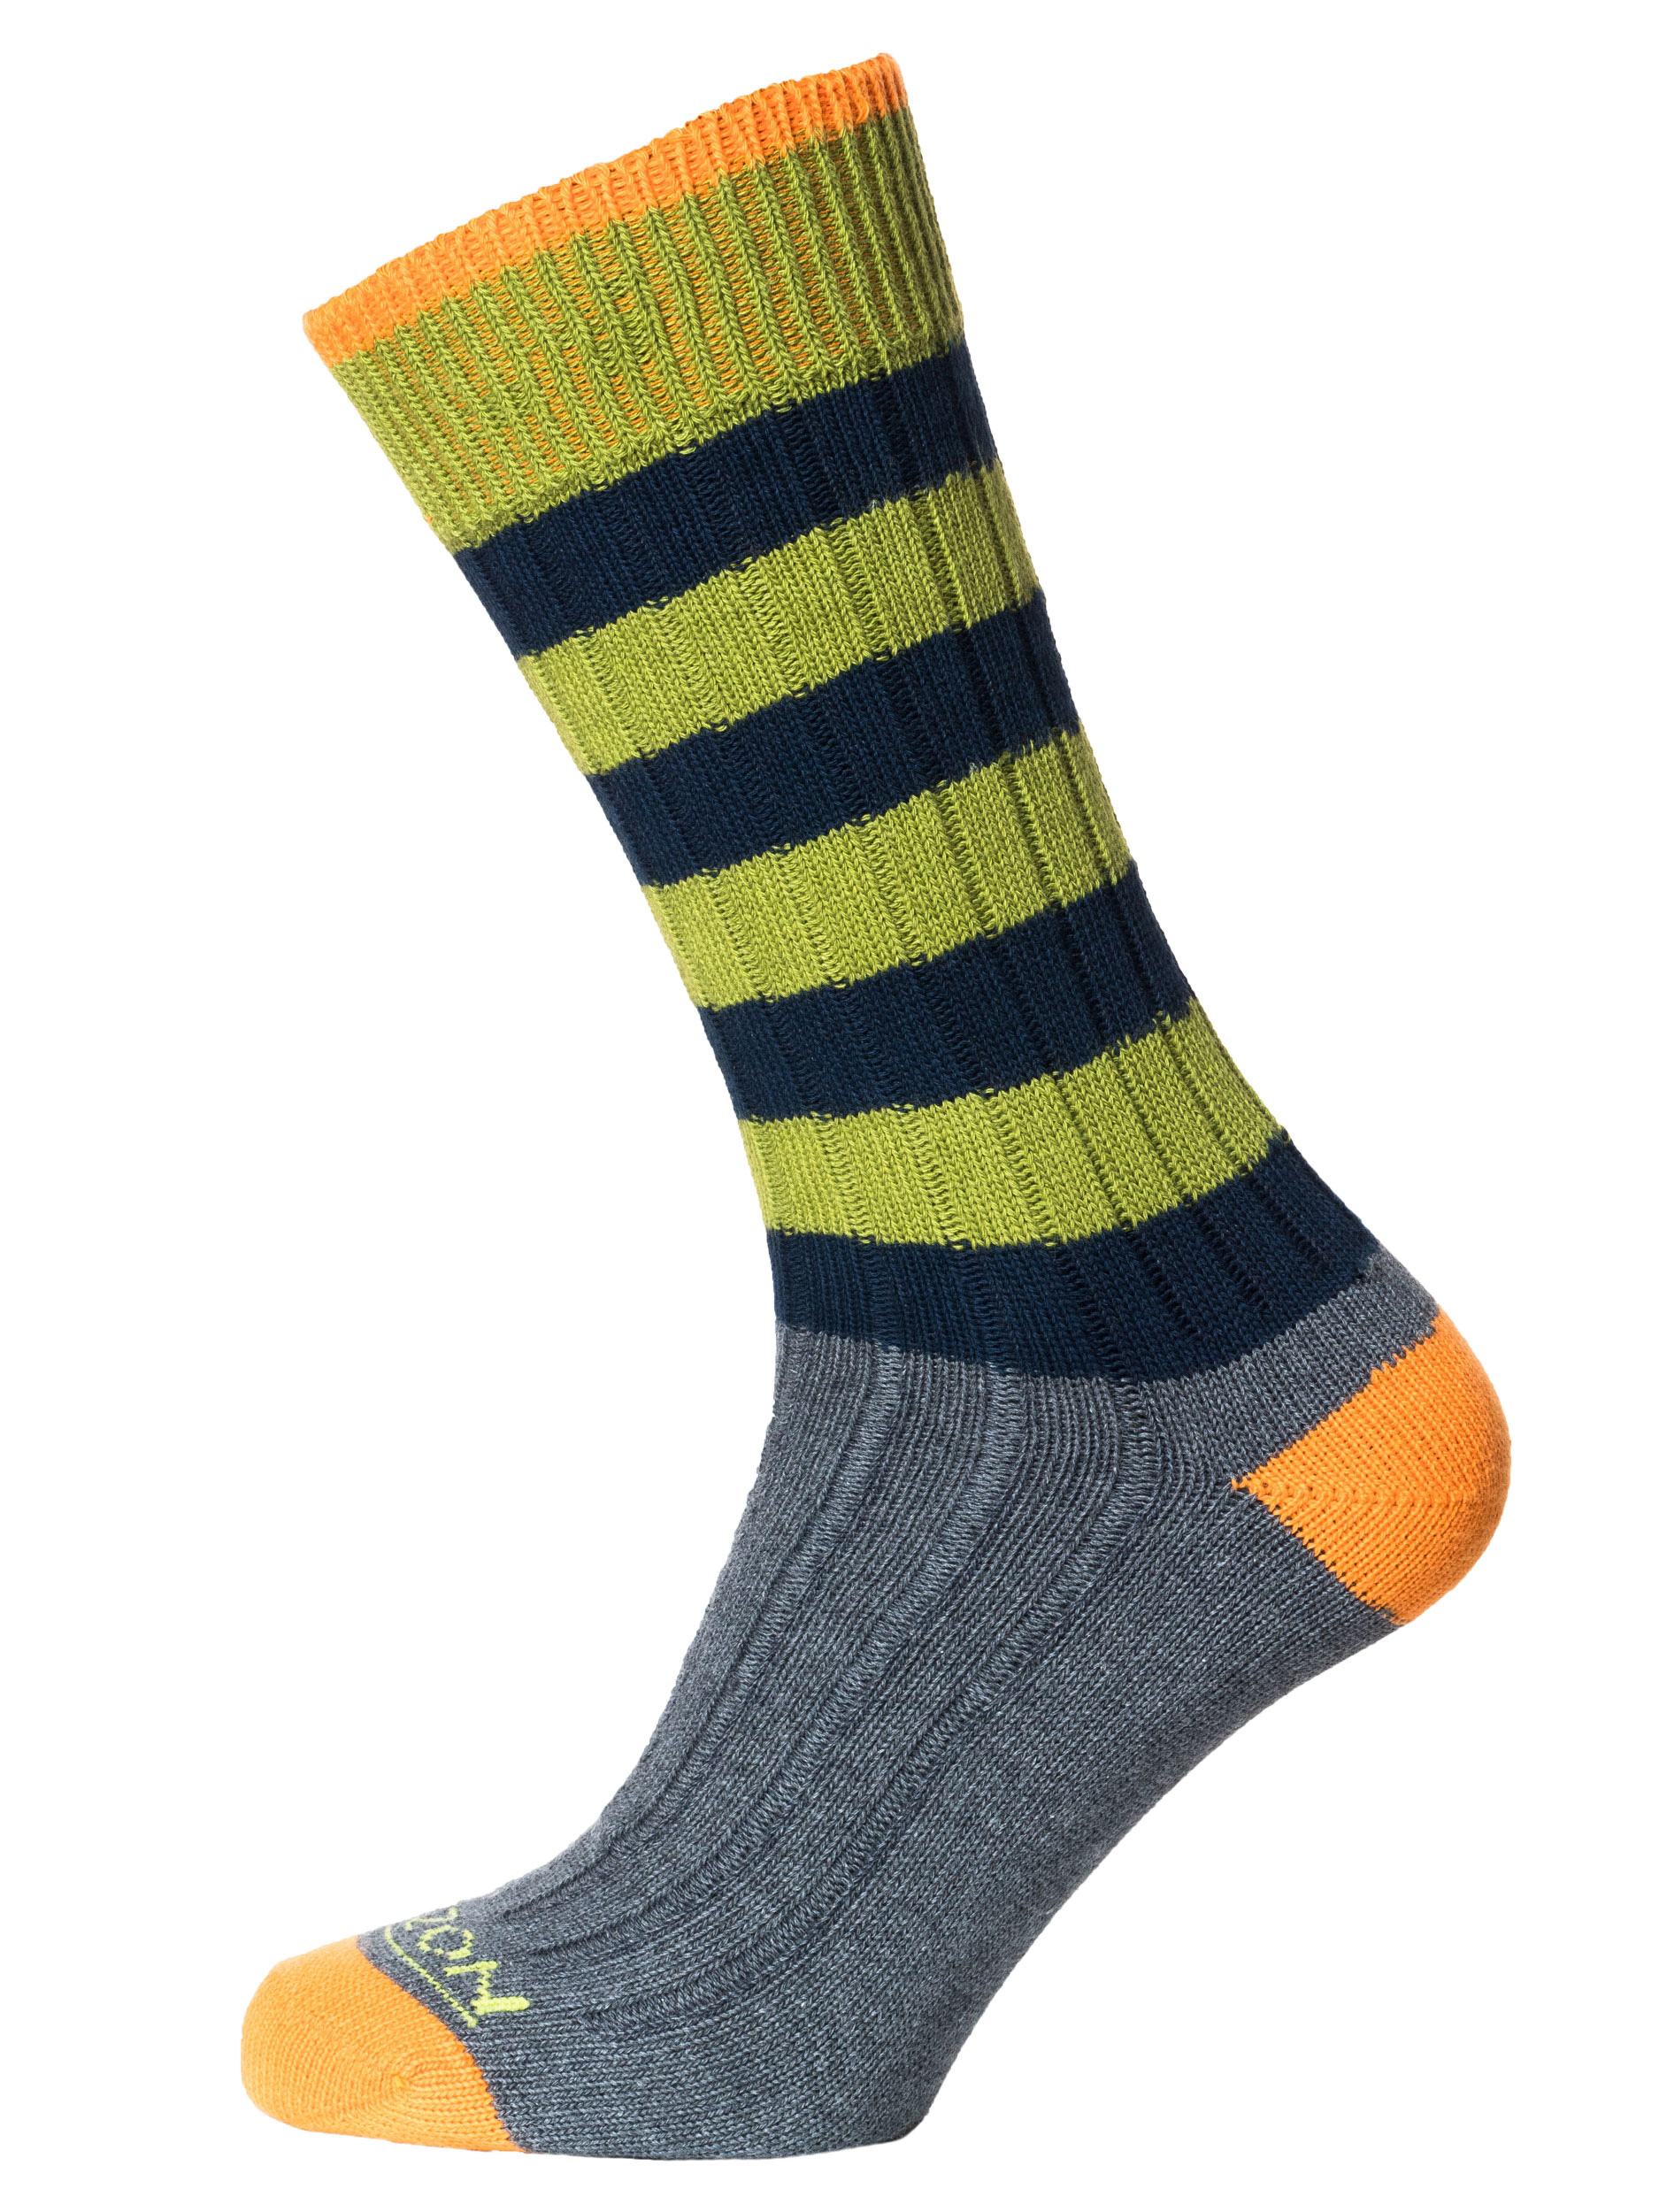 Leisure Mens Cotton Sock Navy Green